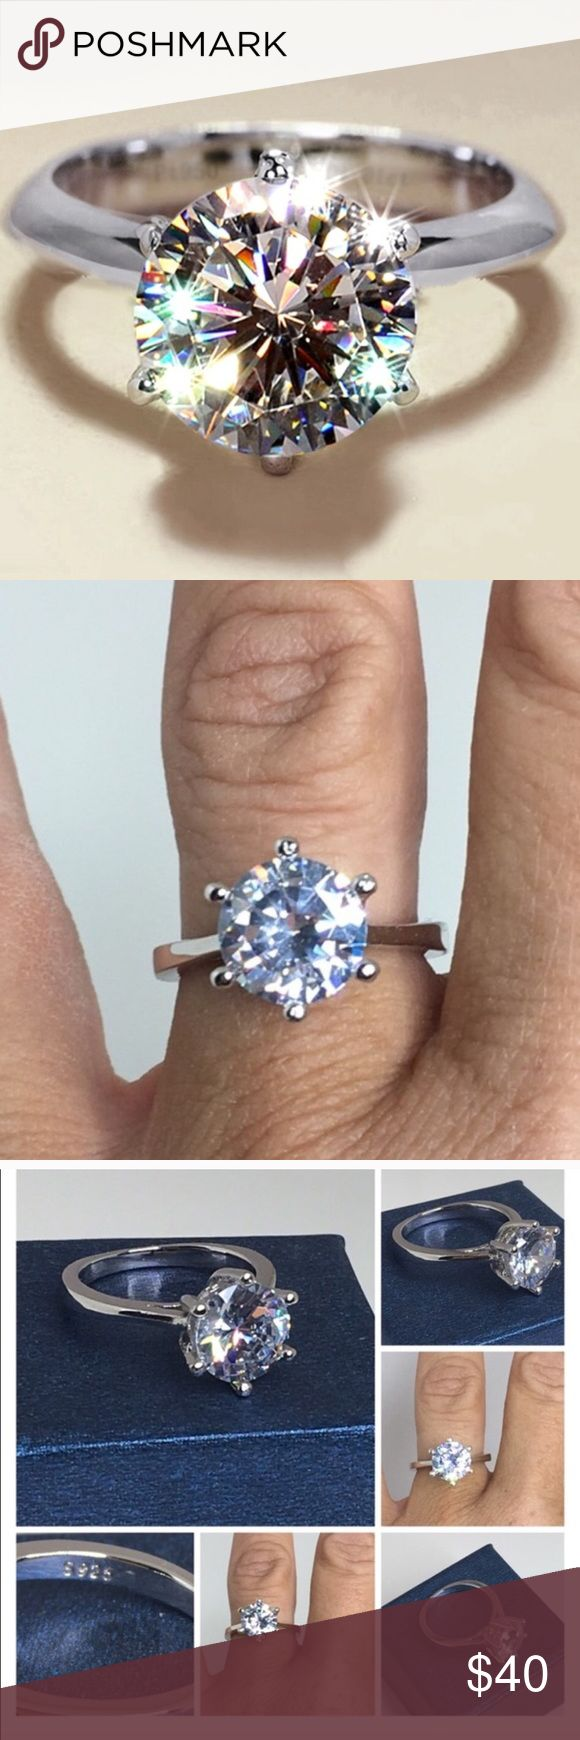 3carat Cz Engagement Ring 925 Sterling Silver Aaa Nwt